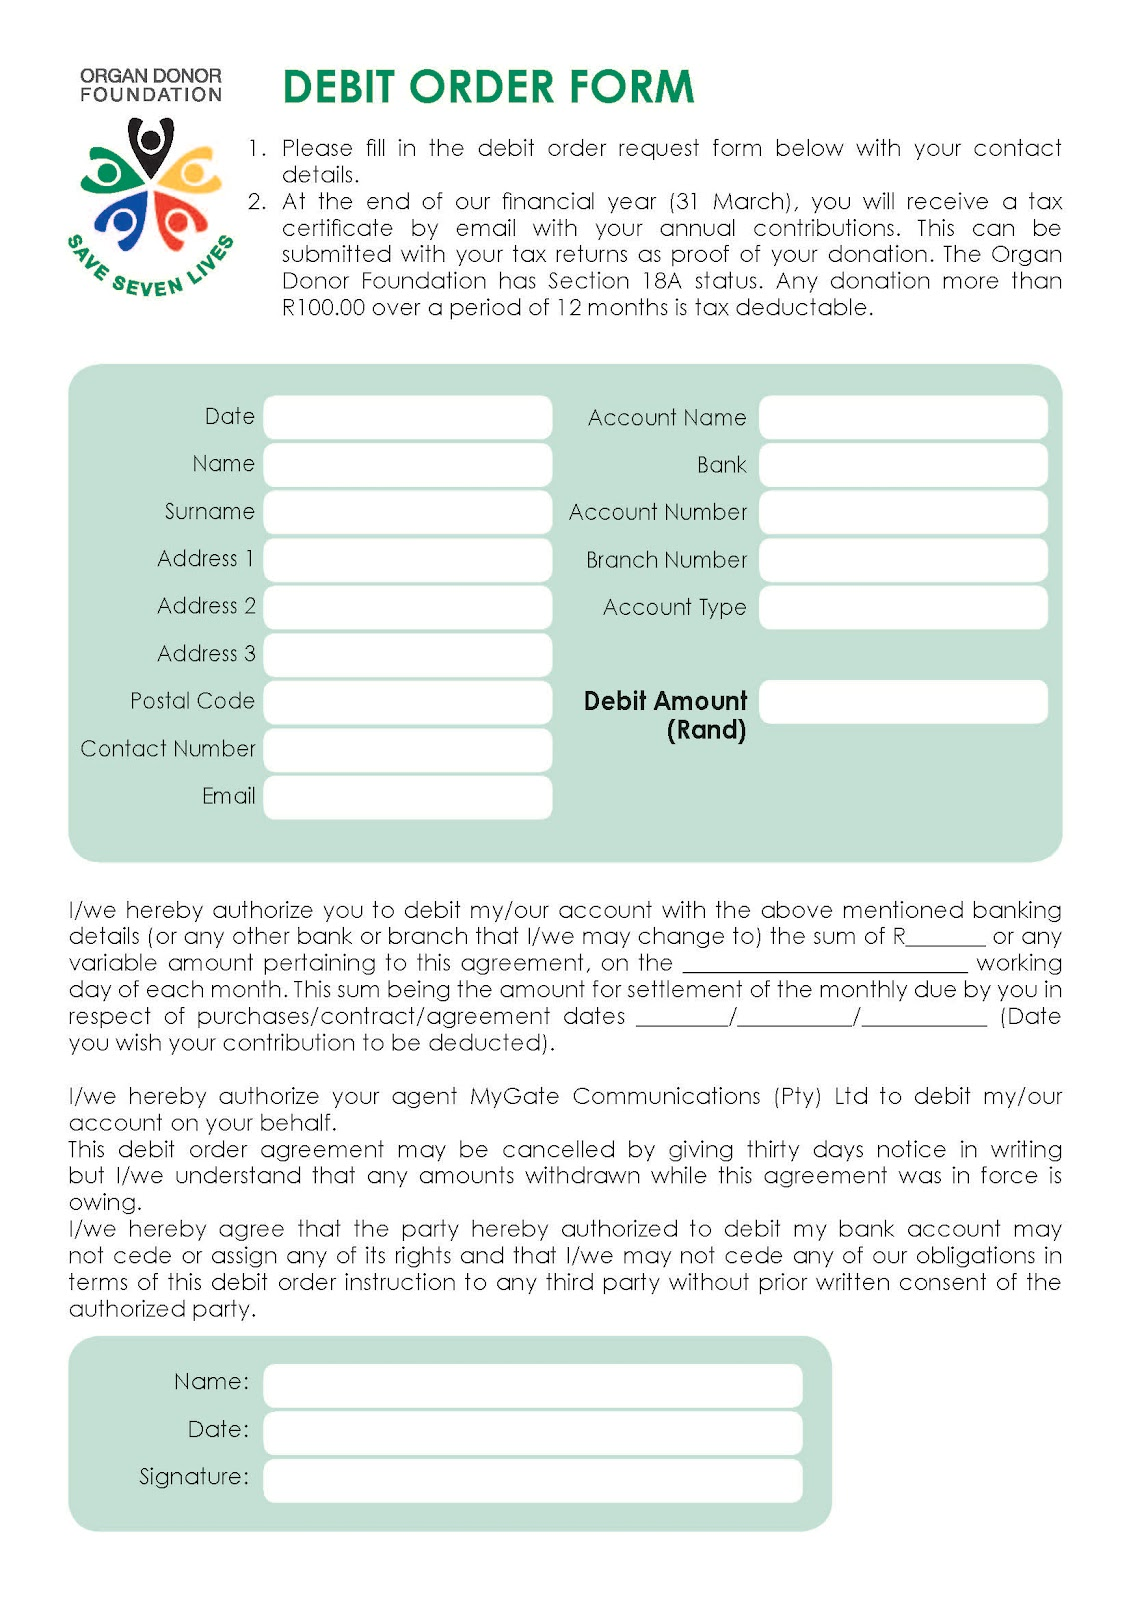 Charming Organdonorfoundation August 2012. Organdonorfoundation August 2012. New  Contributor Debit Order Forms ...